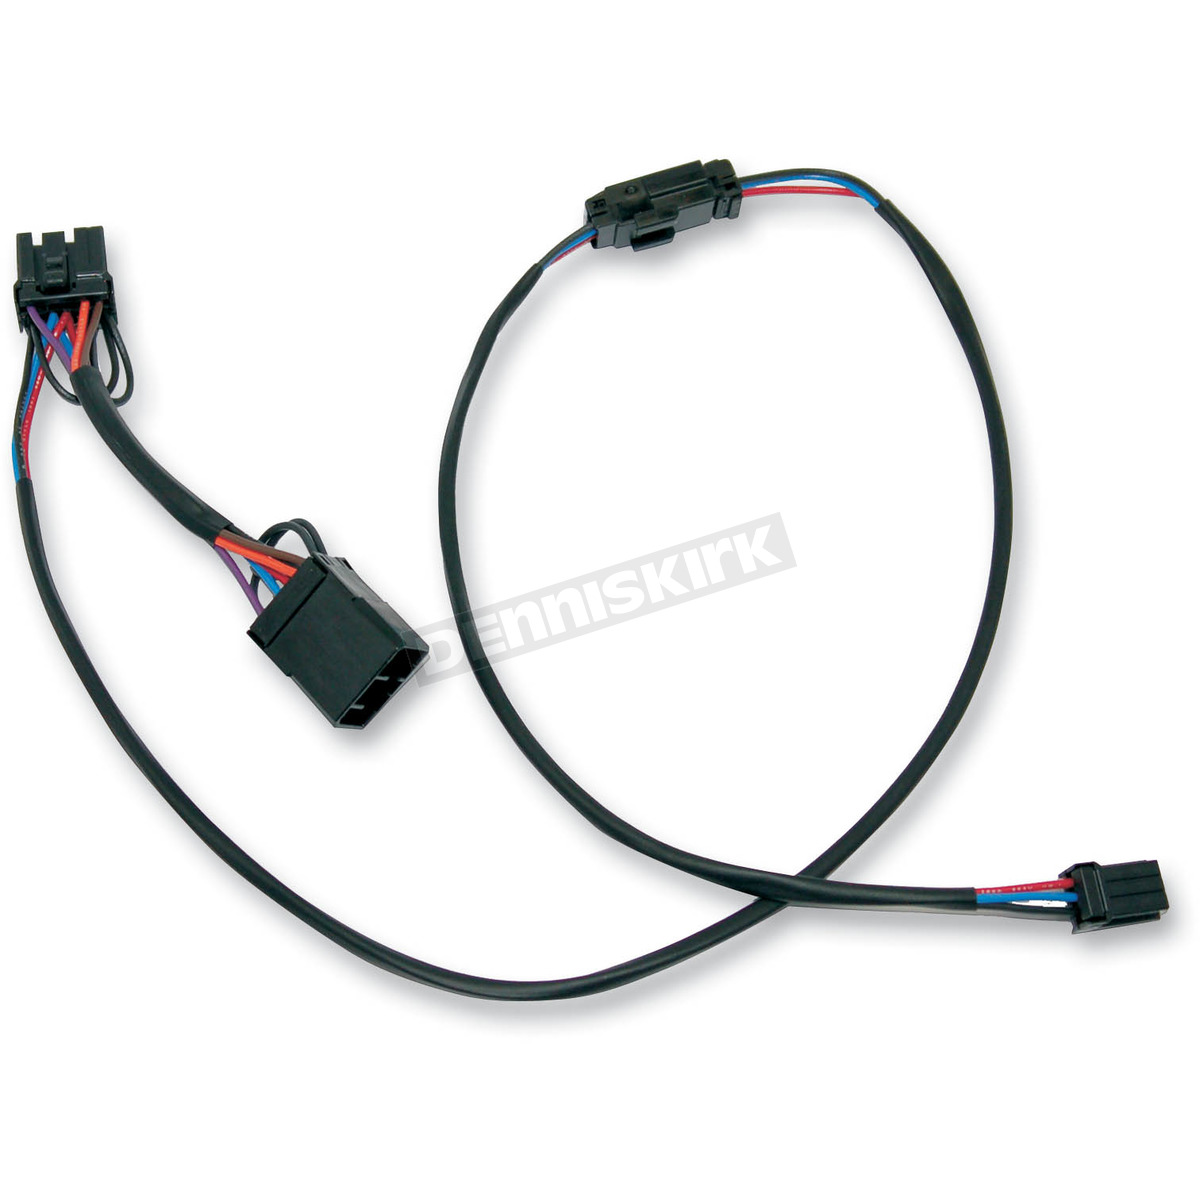 Tour-Pak Quick Disconnect Wiring Harness - NTP-H01 on